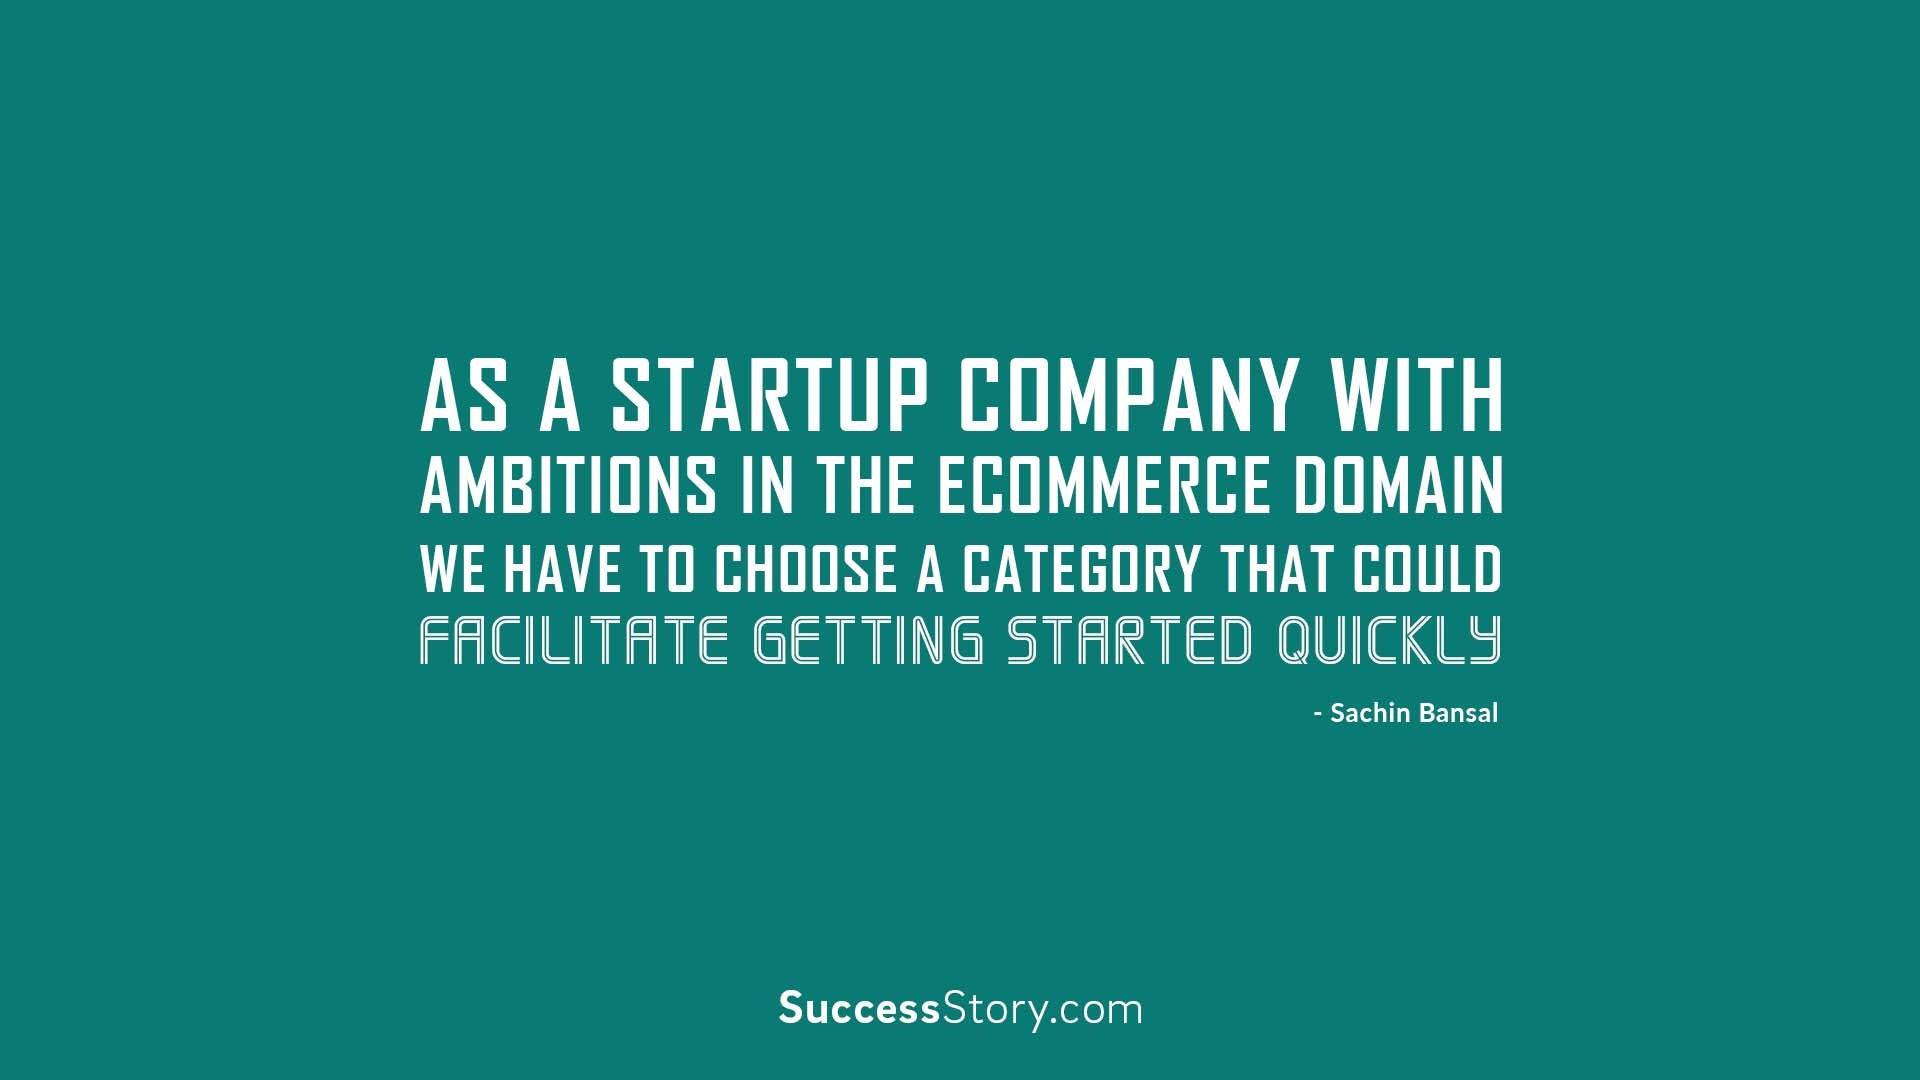 As a startup company